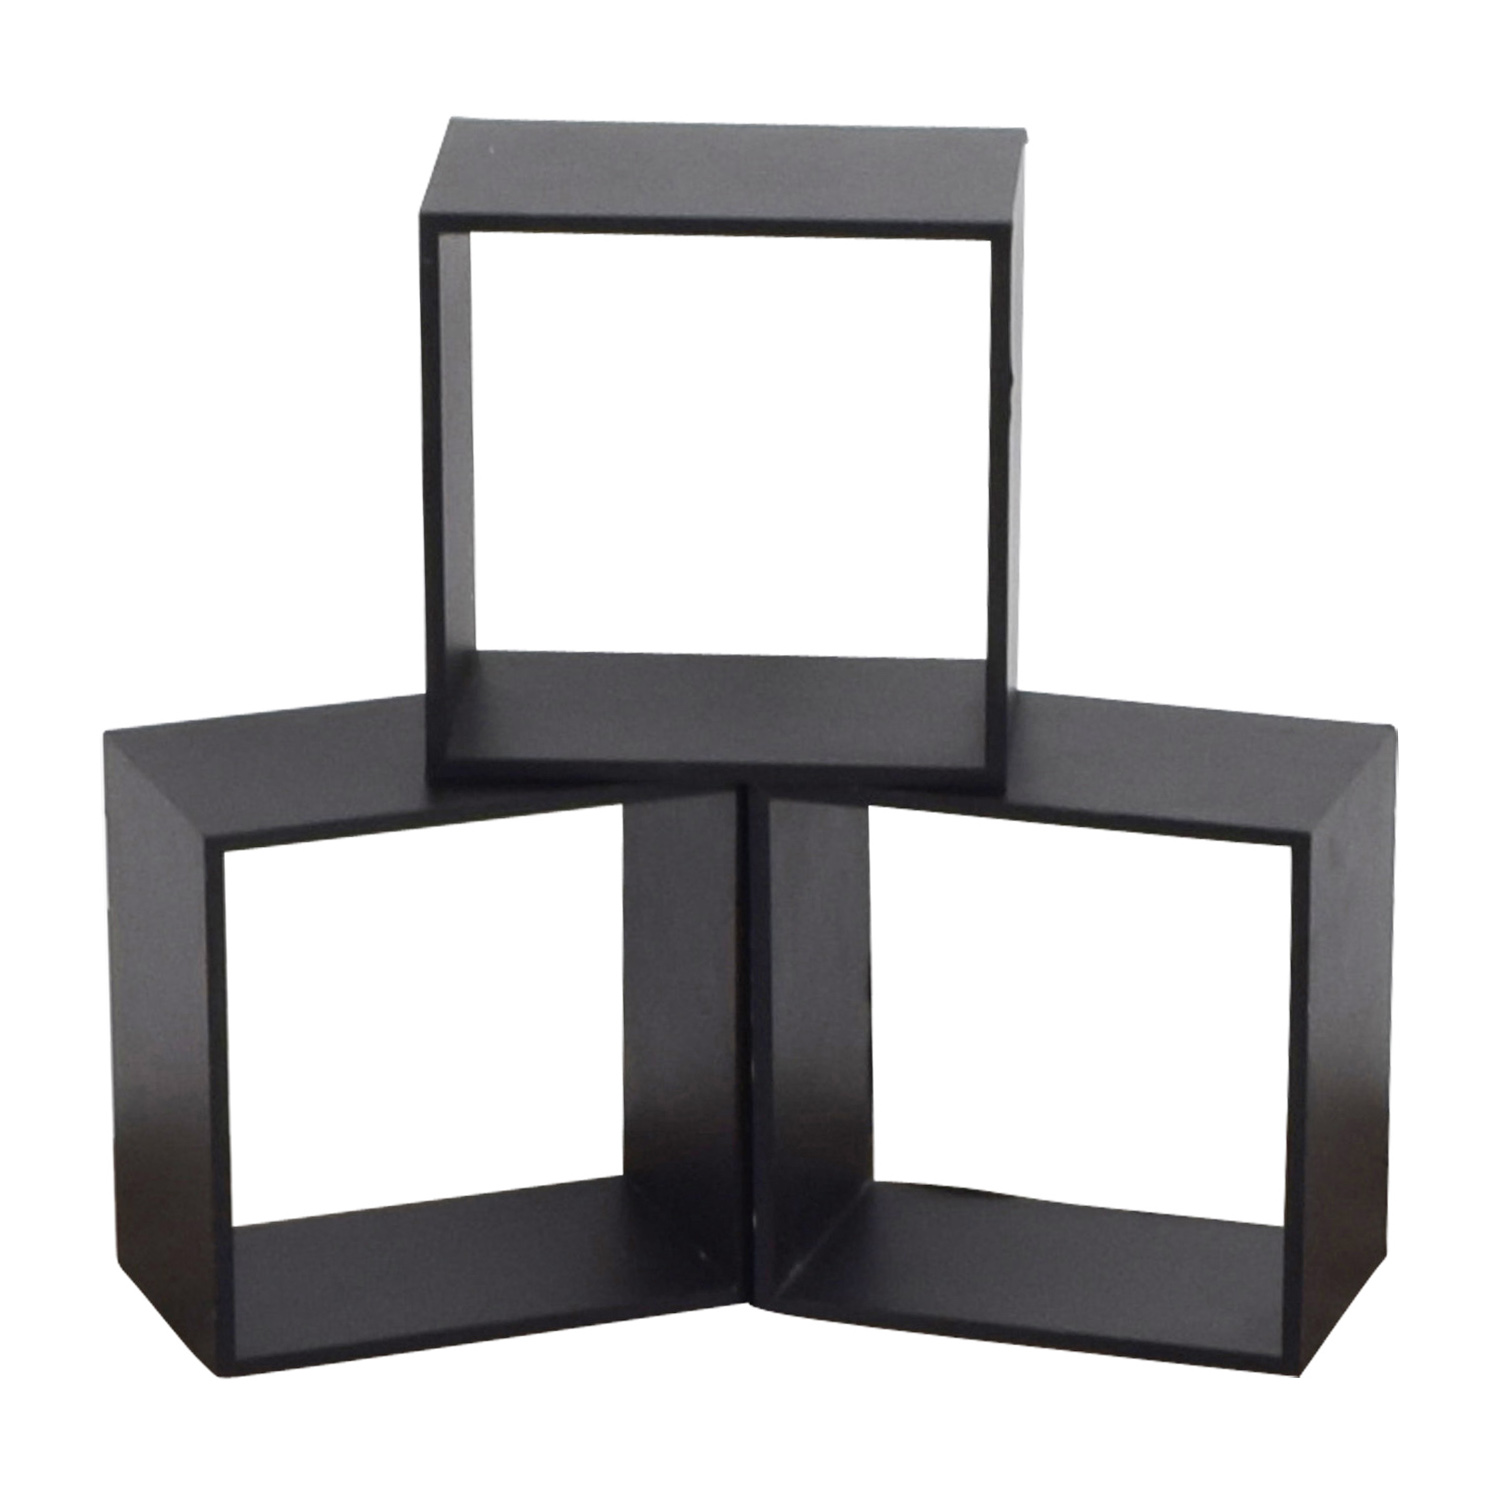 buy Black Decorative Wall Box Shelves Decor